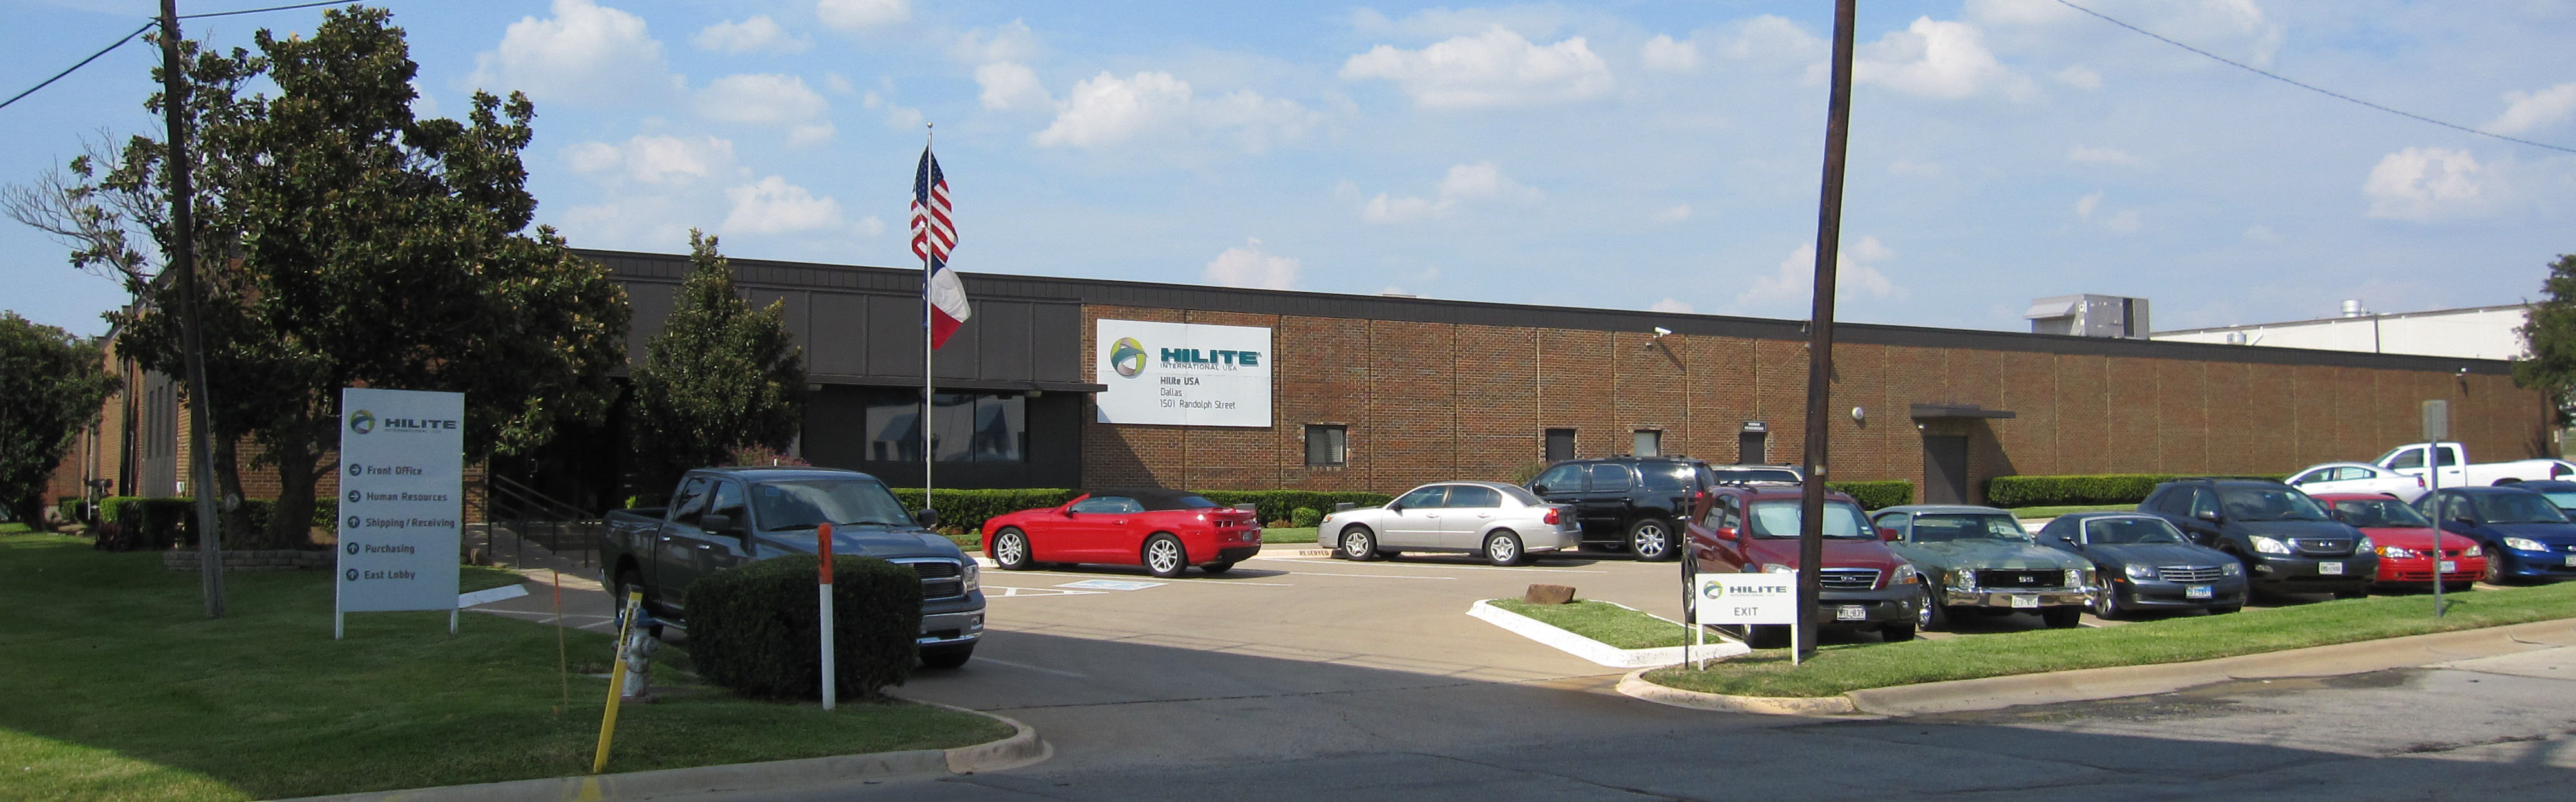 Hilite International Building - Carrollton, Texas